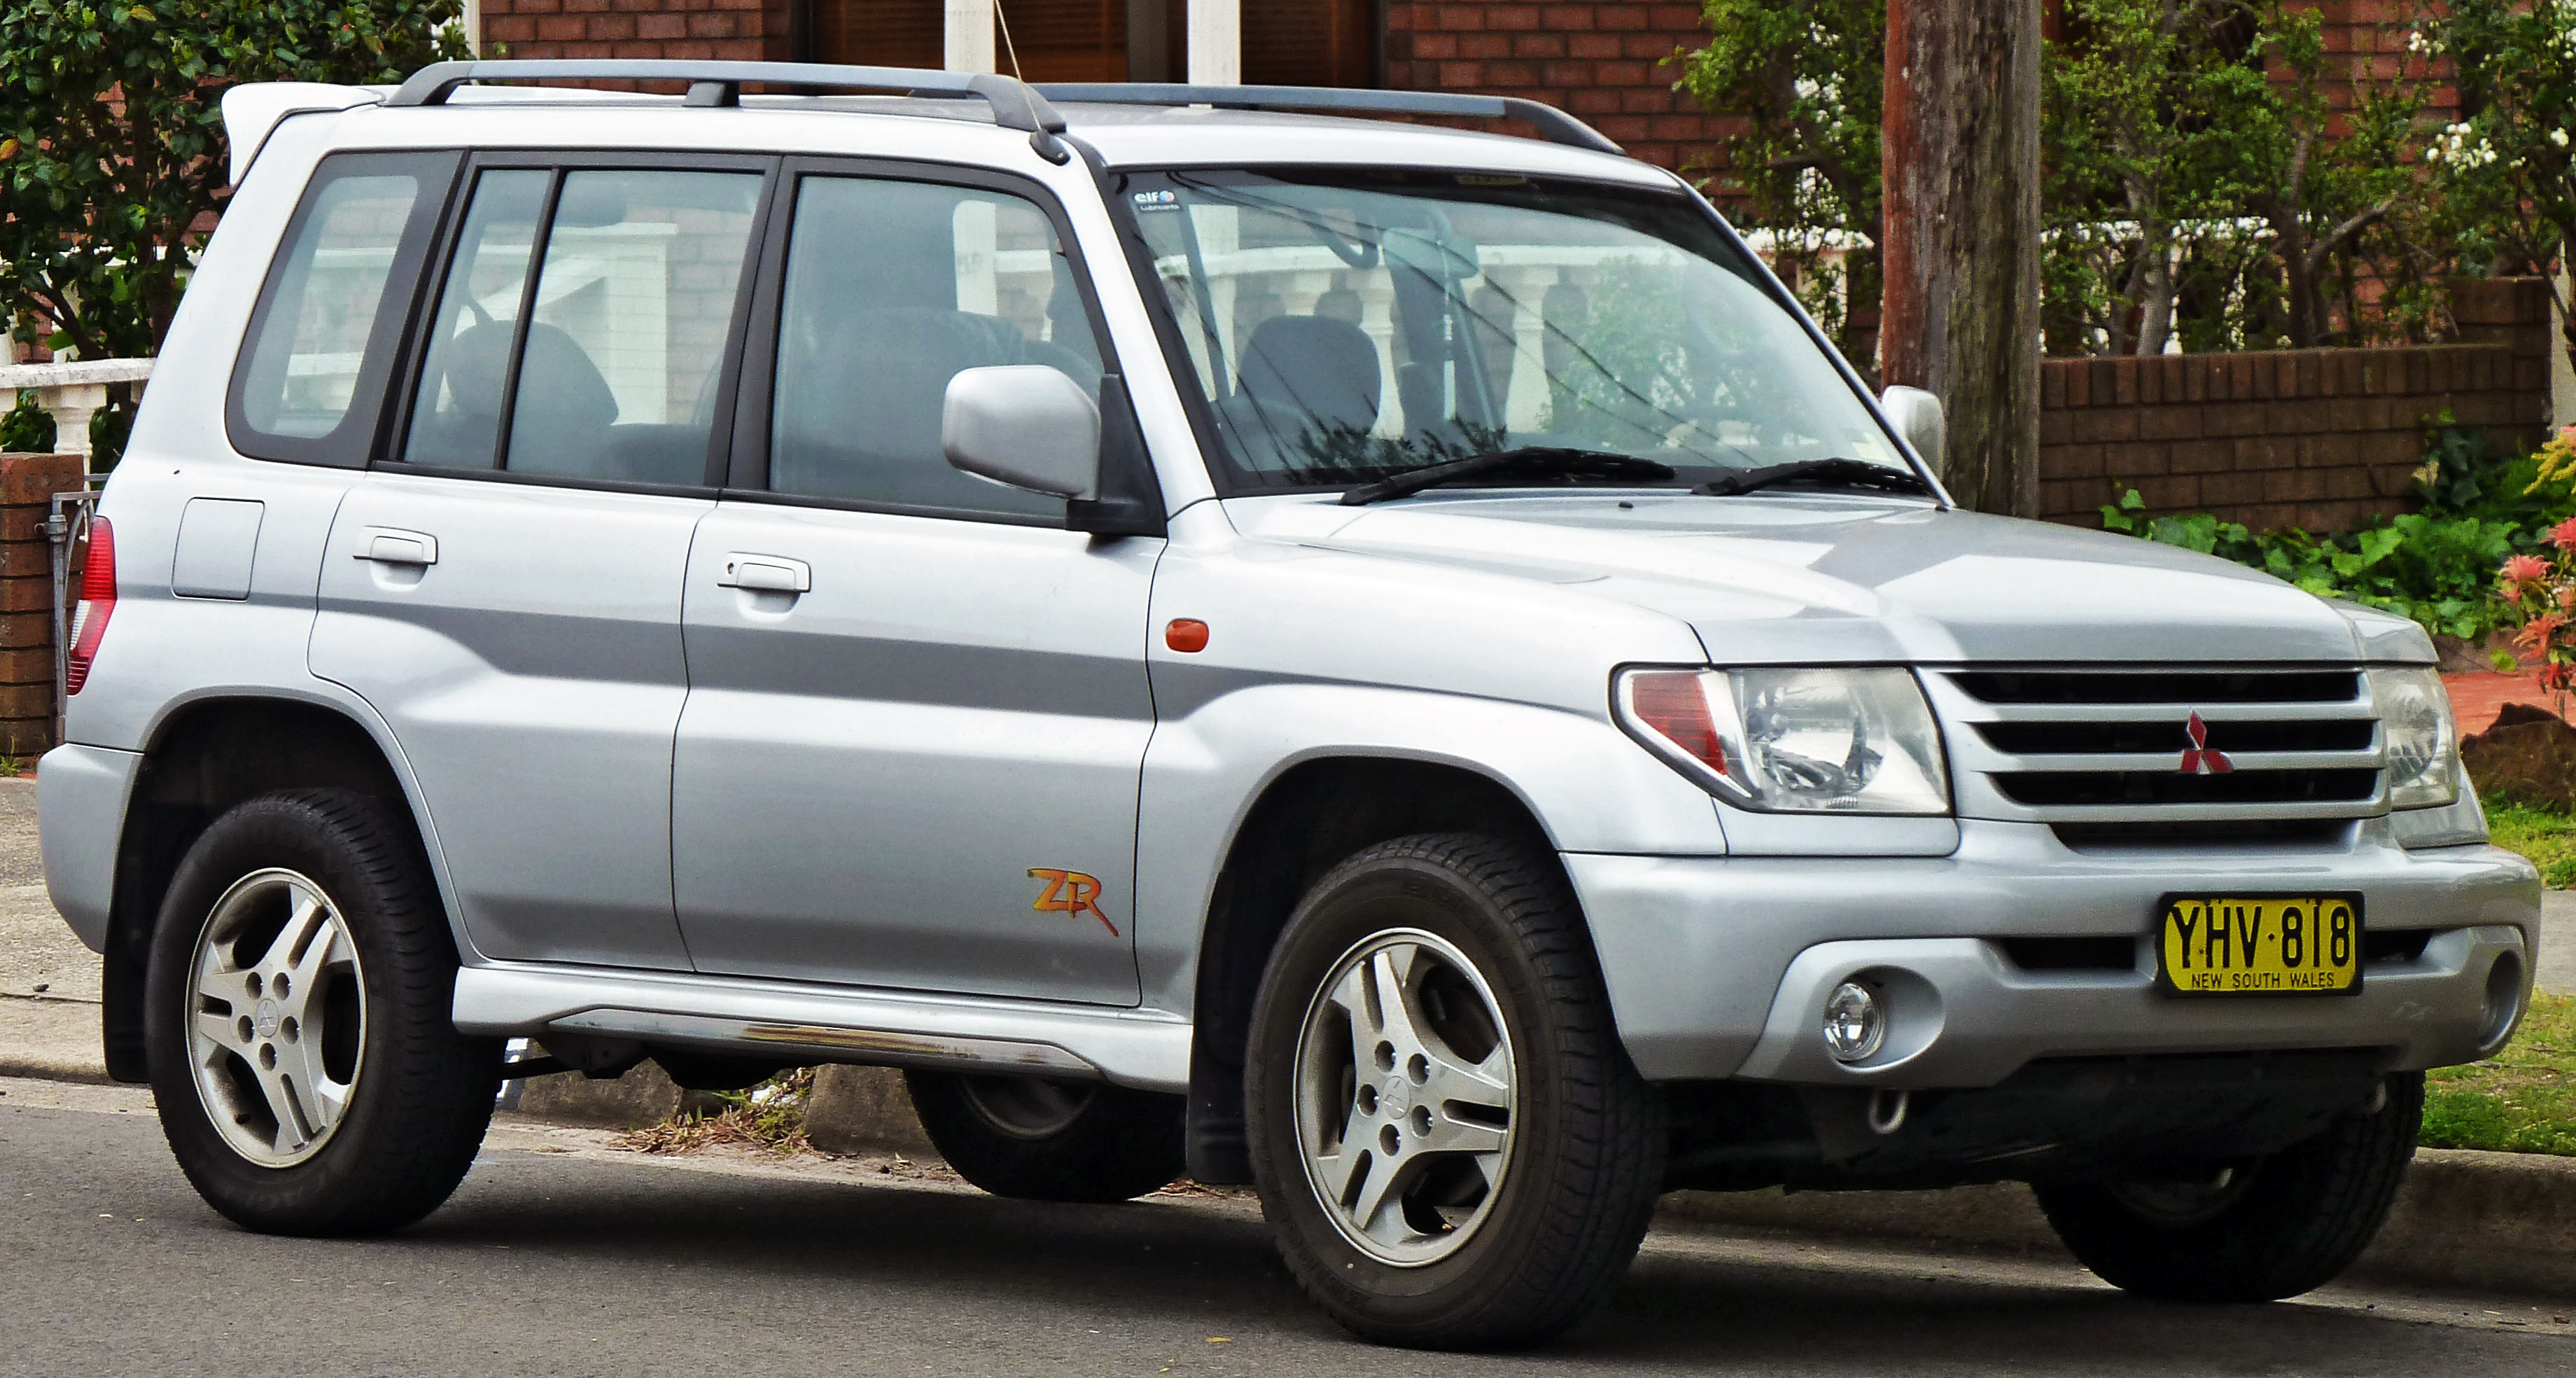 Mitsubishi Pajero 2001 Review Amazing Pictures And Images Look At The Car